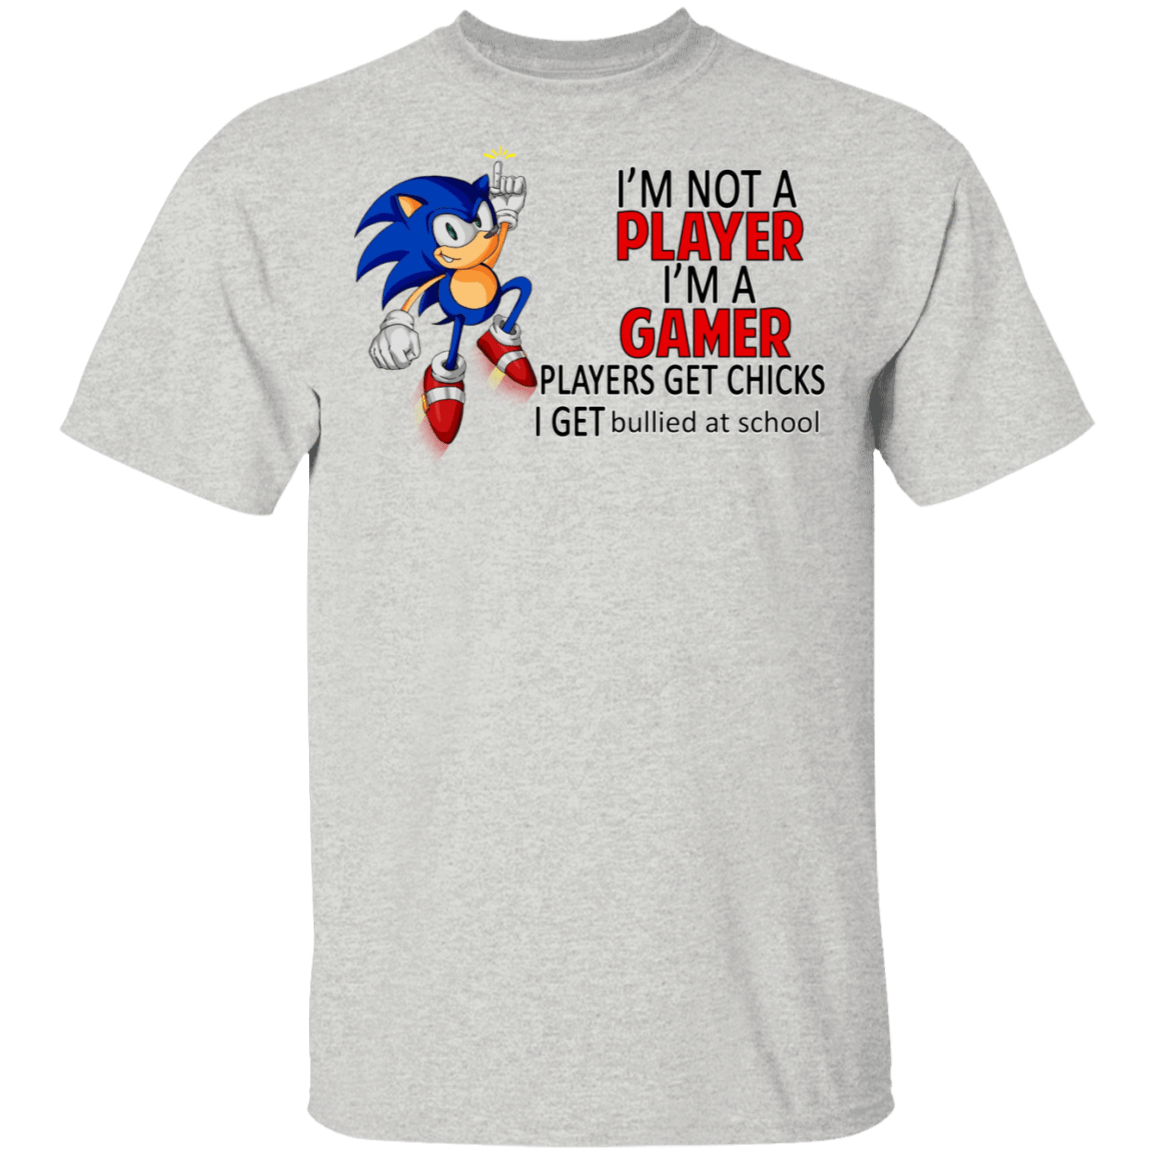 I'm Not Player I'm A Gamer Players Get Chicks I Get Bullied At School T-Shirts, Hoodies 1049-9952-84580346-48184 - Tee Ript